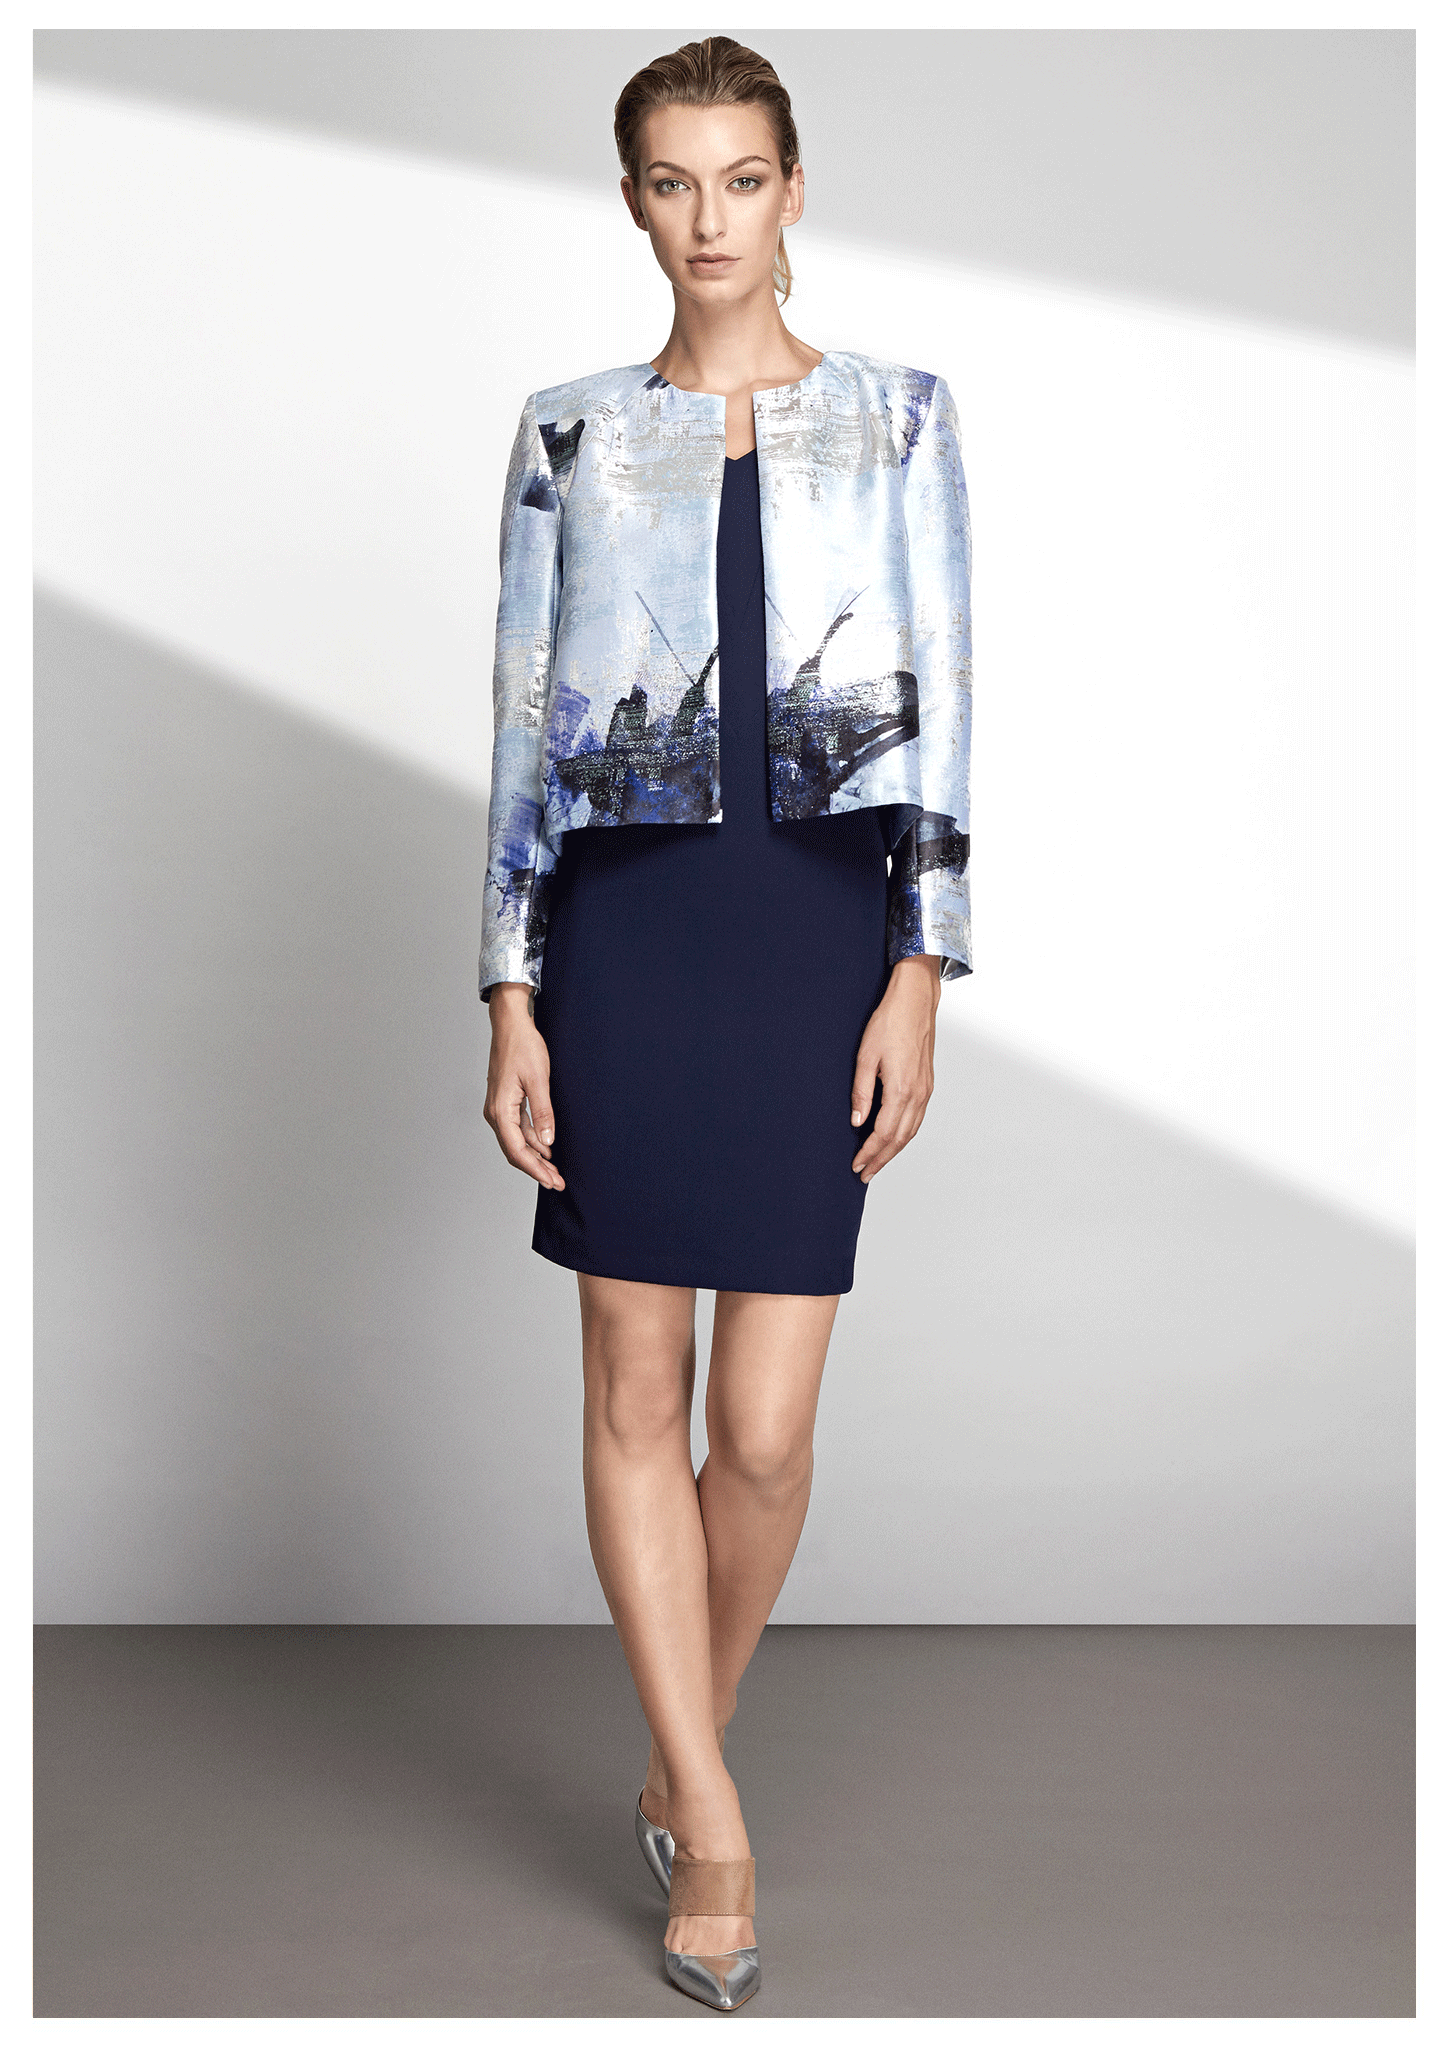 Slim-fit, collarless jacket with metallic graphic print